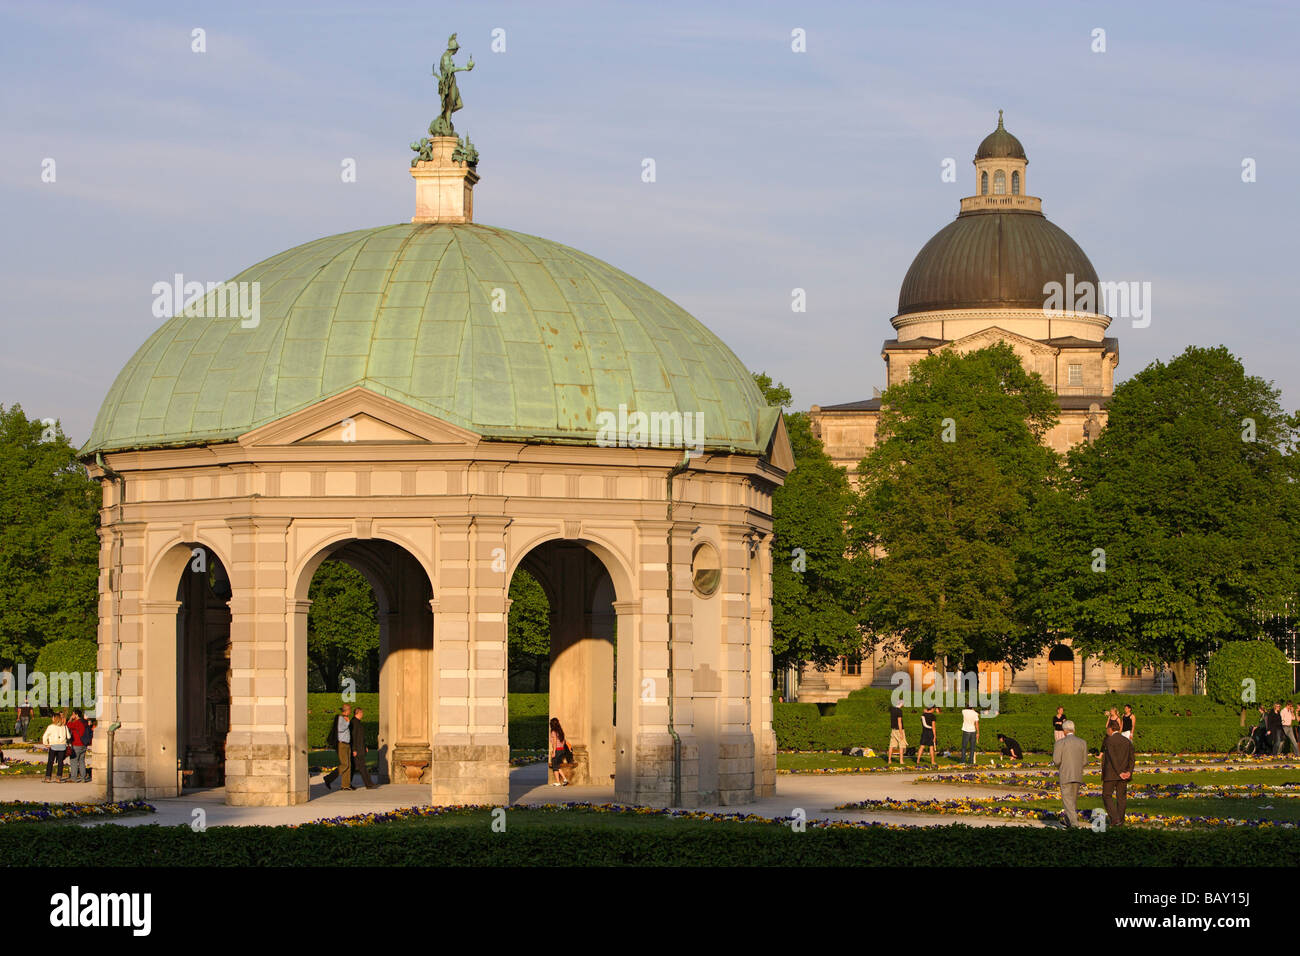 Pavillion at Hofgarten in front of dome of the Bavarian State Chancellery, Munich, Bavaria, Germany - Stock Image